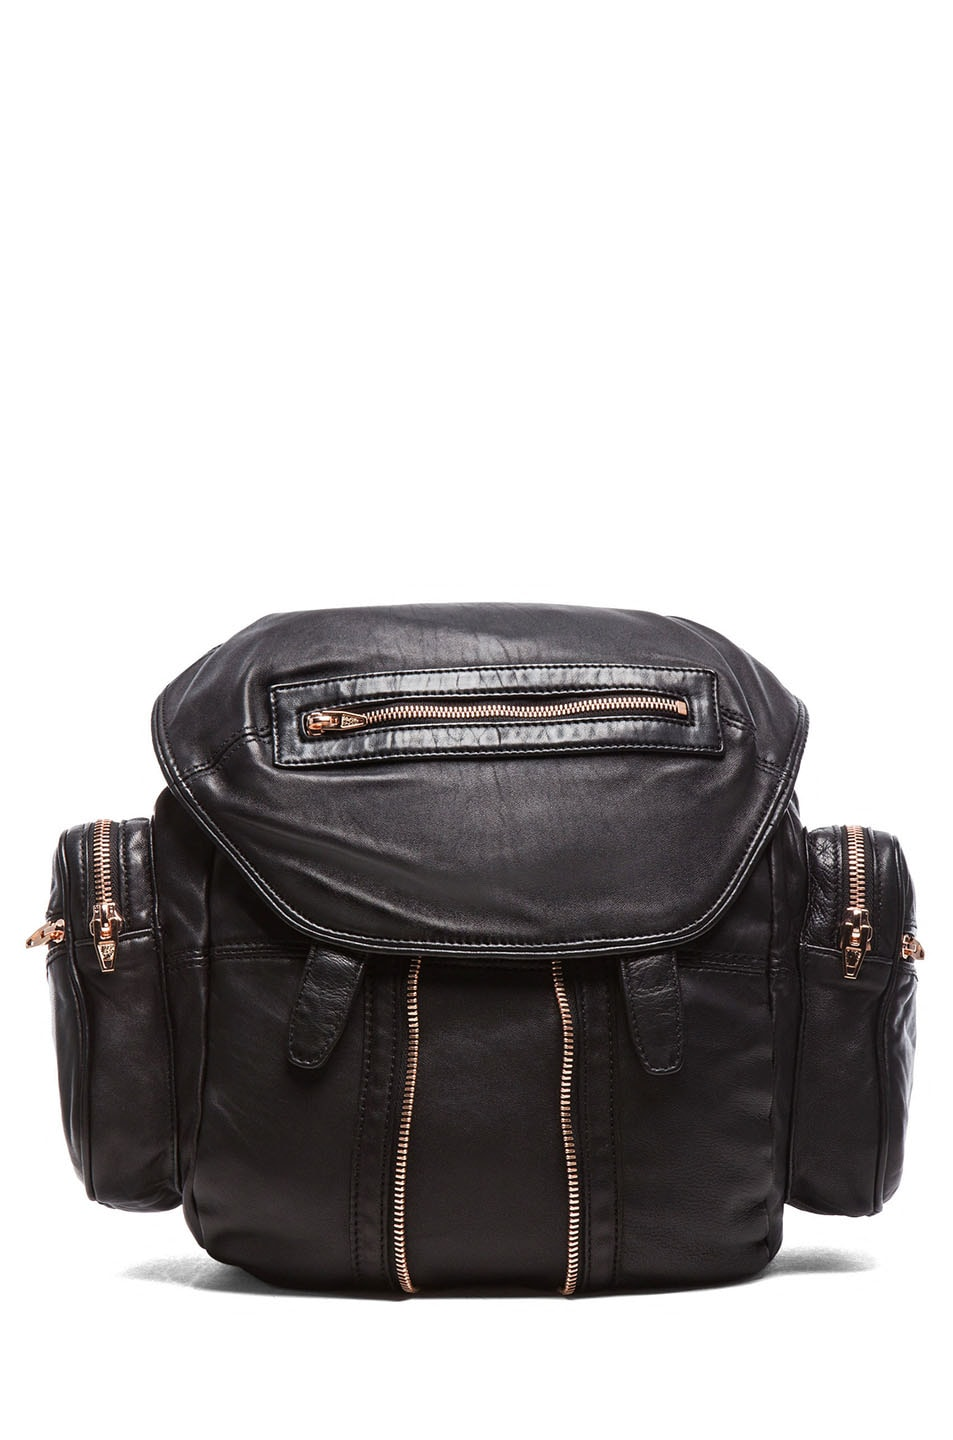 8222d4f58b Image 1 of Alexander Wang Marti Backpack with Rose Gold Hardware in Black